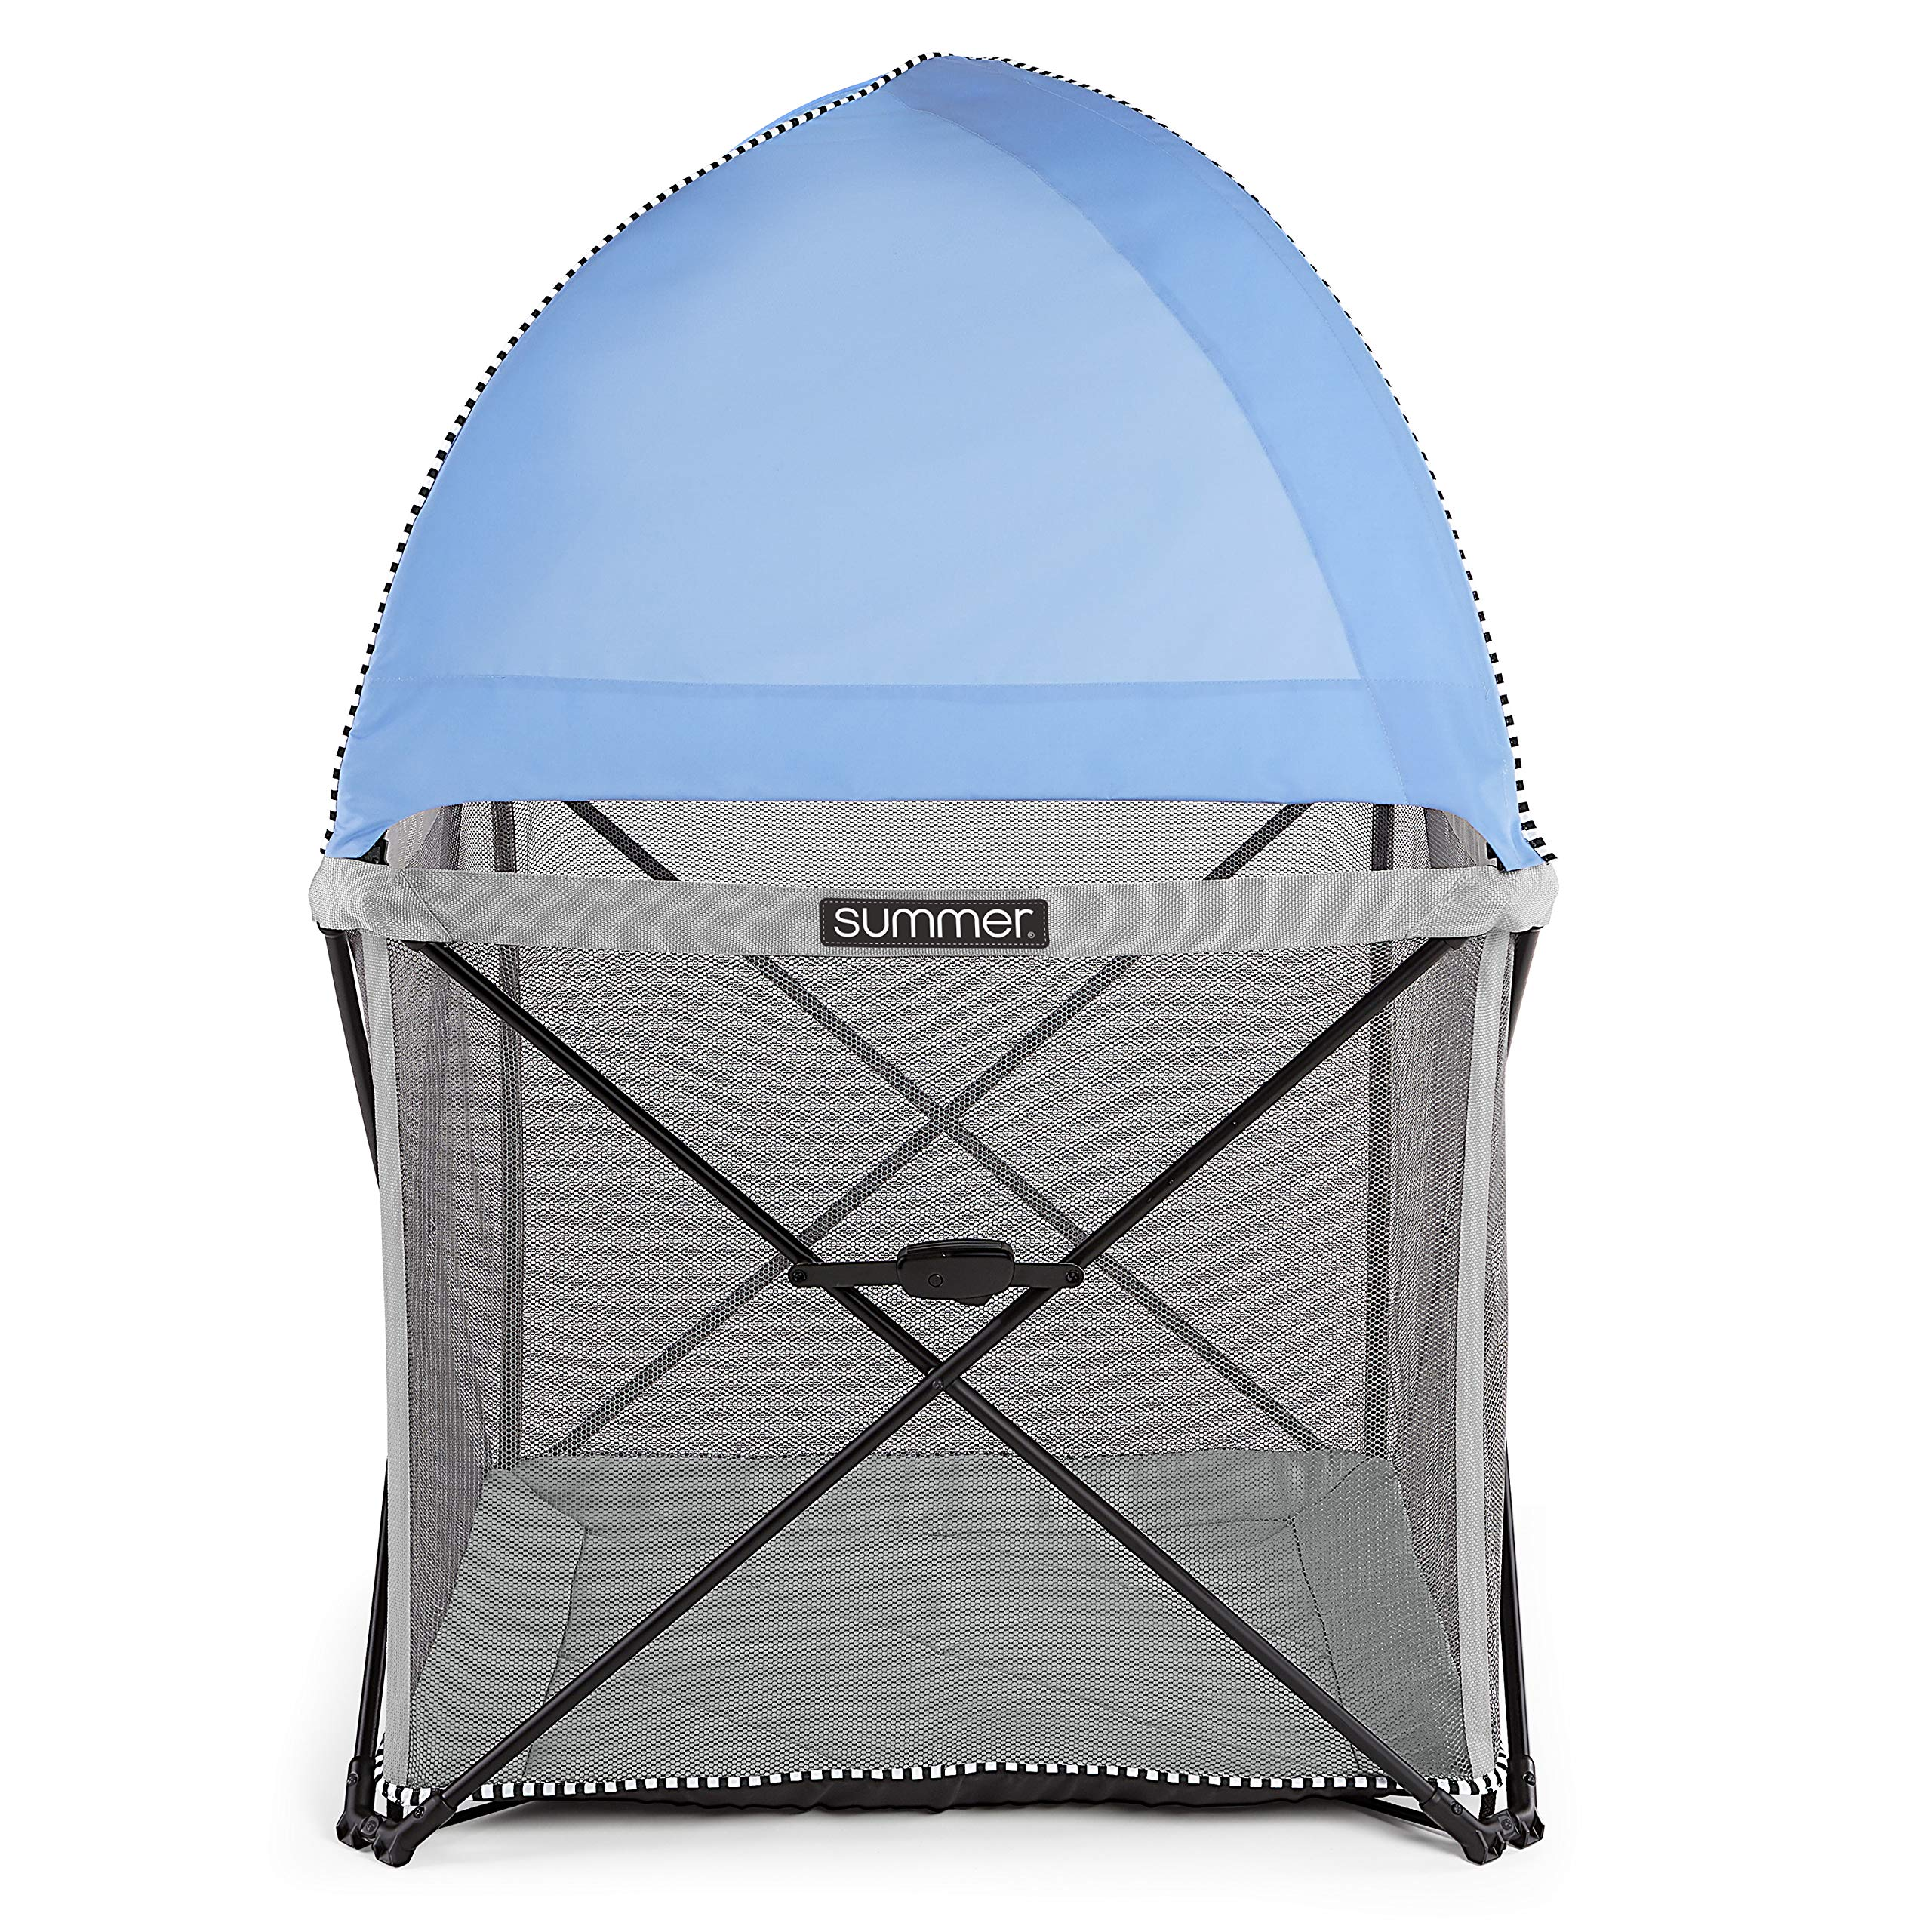 Summer Infant Pop 'n Play SE Cube Playard (Sweetlife Edition), Blue Raspberry, 4-Sided by Summer Infant (Image #5)